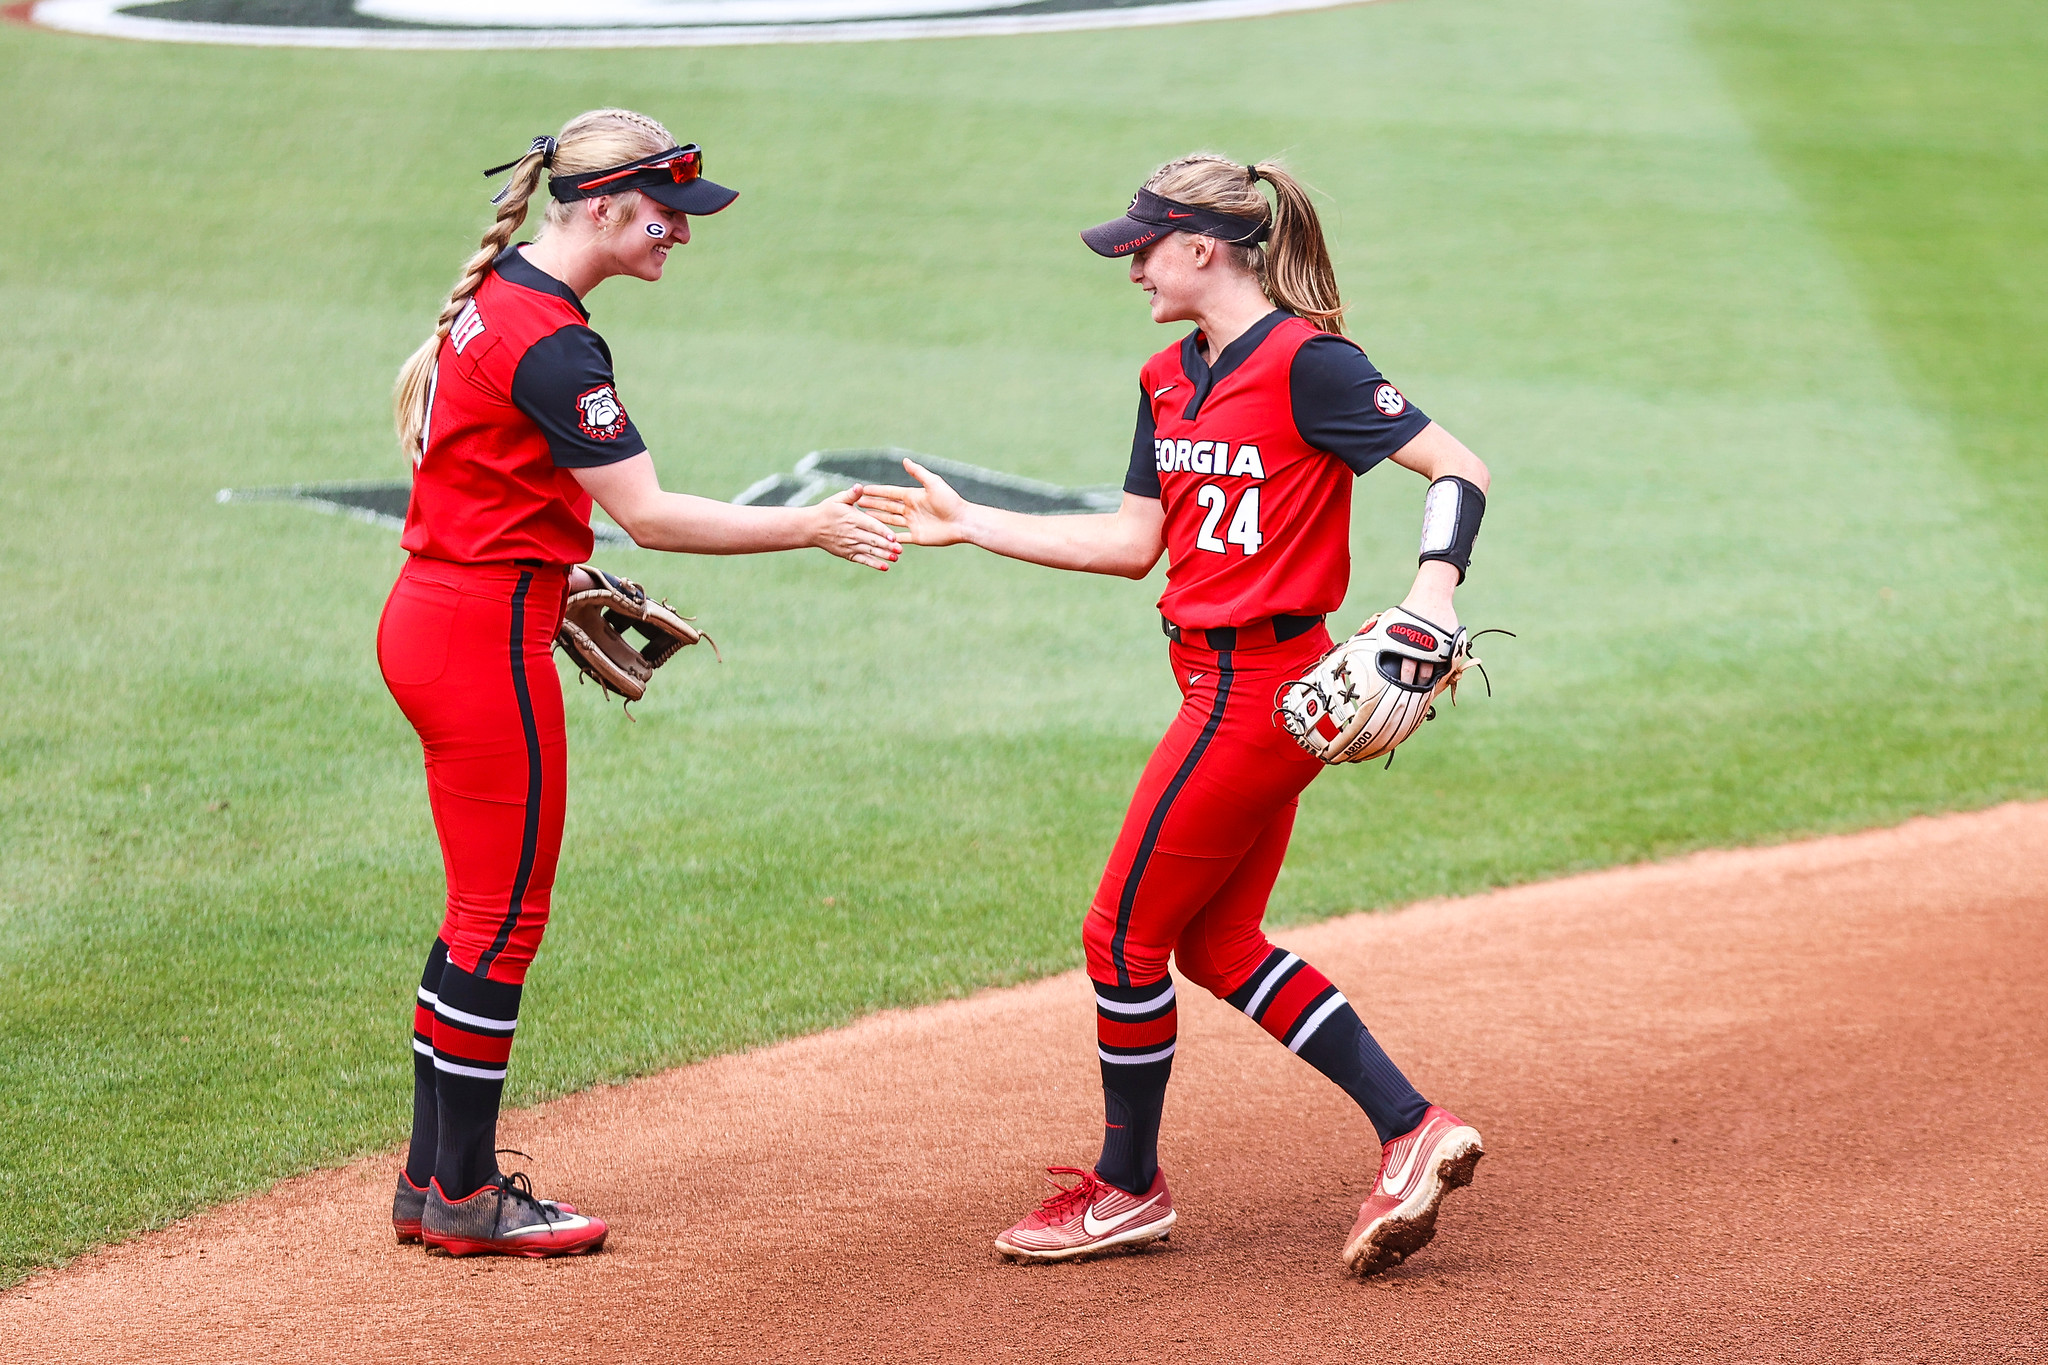 Georgia outfielder Sydney Chambley (9), Georgia infielder Ellie Armistead (24) during a game against Alabama at Jack Turner softball stadium in Athens, Ga., on Sunday, May 2, 2021. (Photo by Tony Walsh)